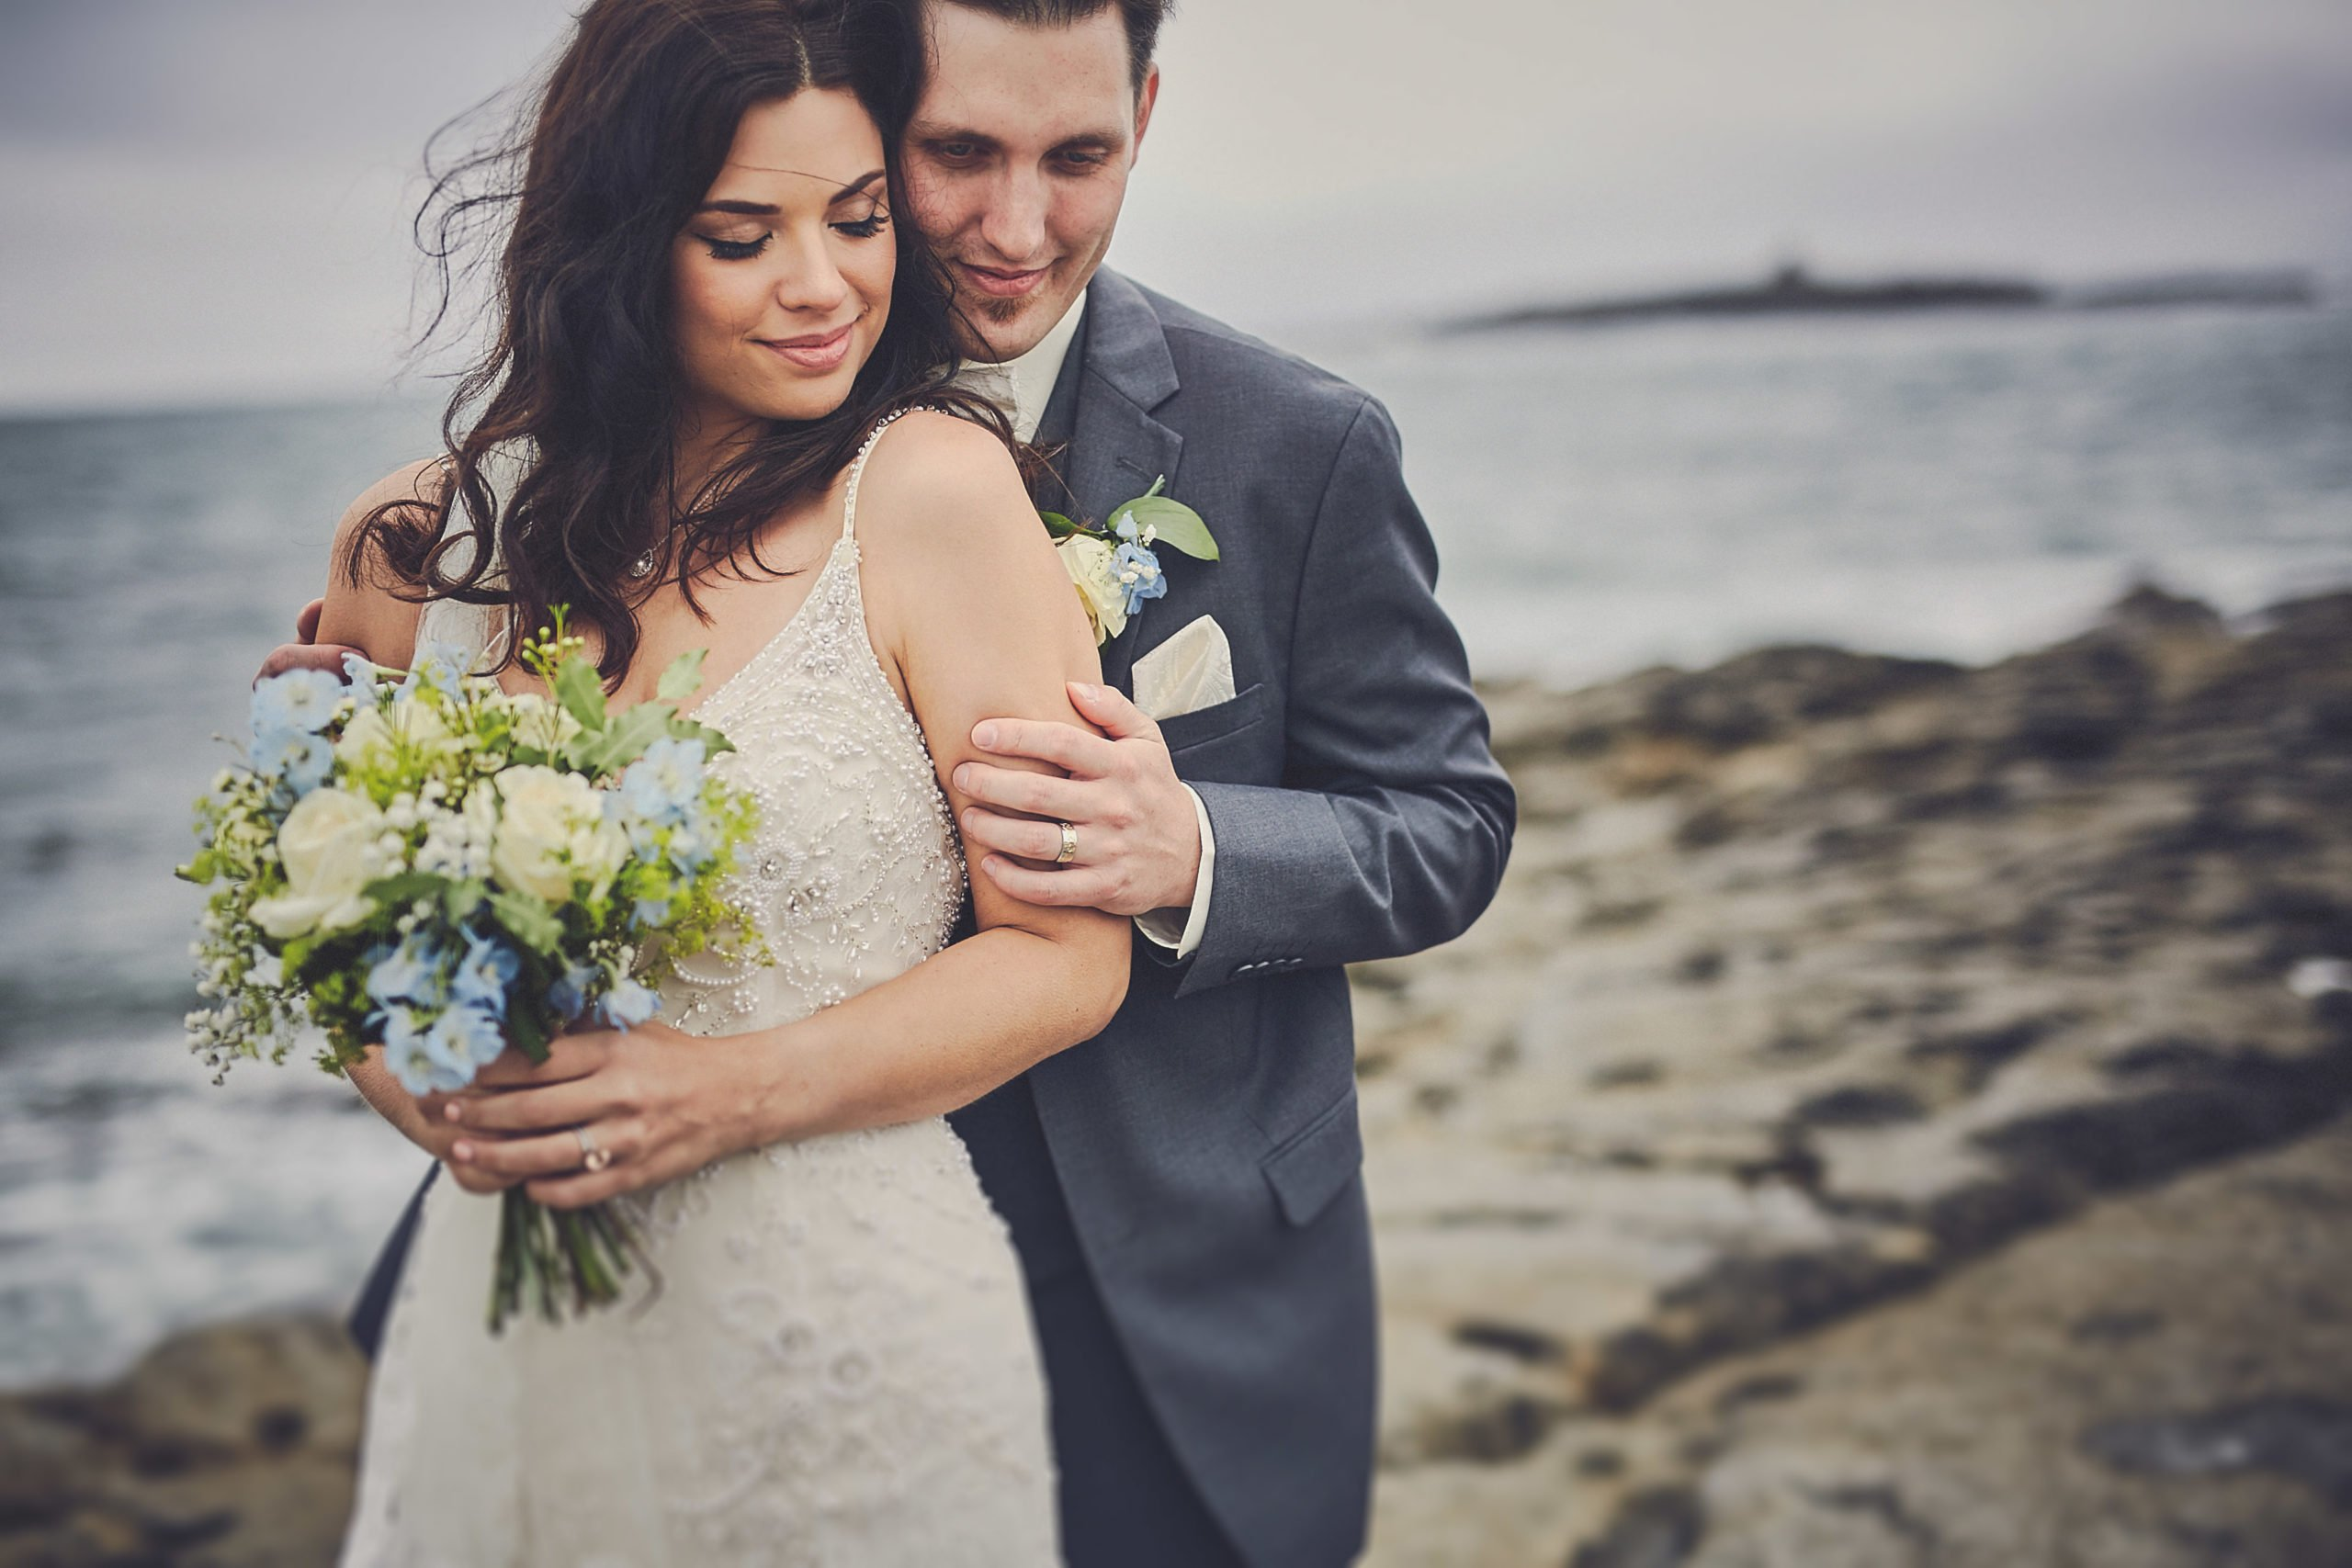 Elopement Wedding Ireland | Destination Wedding Ireland 10